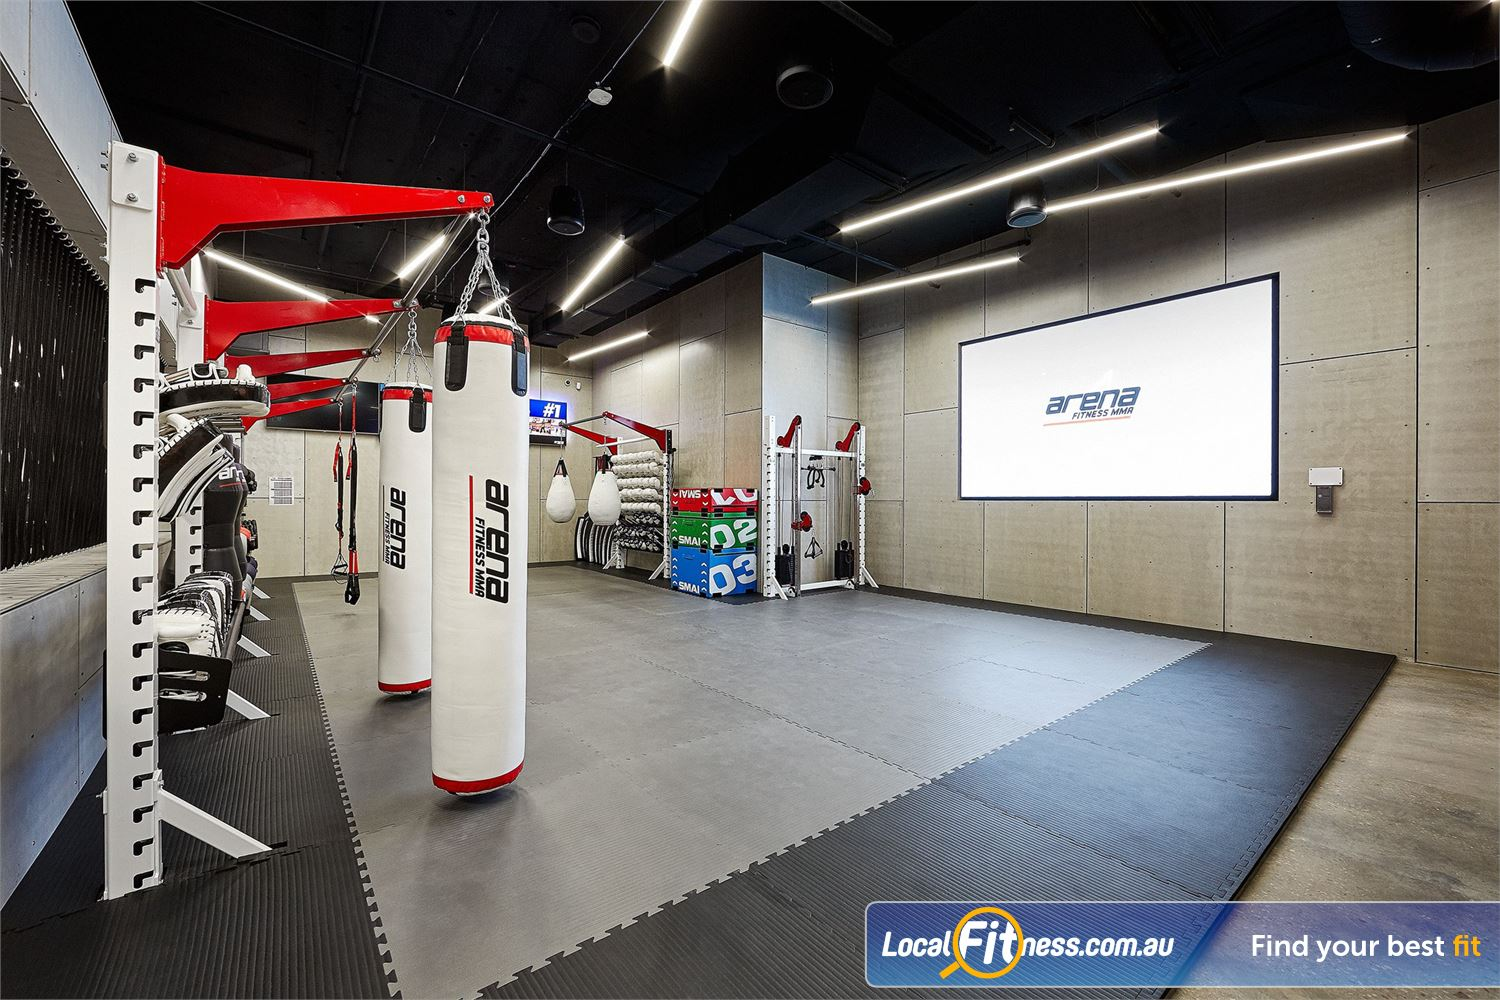 Goodlife Health Clubs Near Grange The new Arena MMA area in West Lakes.